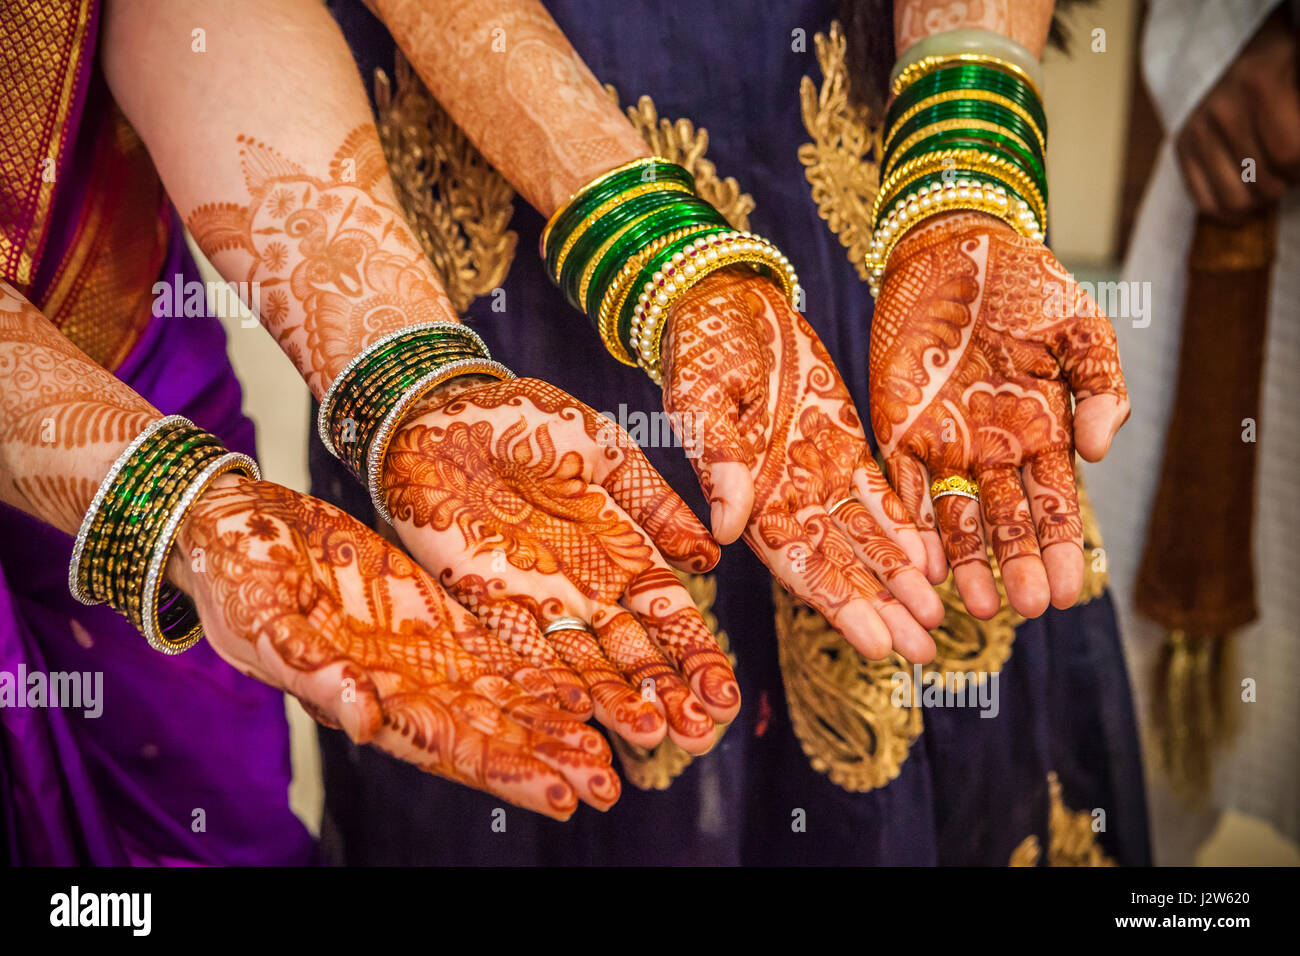 Il decorato le braccia e le mani di due donne in un Indù matrimonio indiano. Pune, India. Immagini Stock